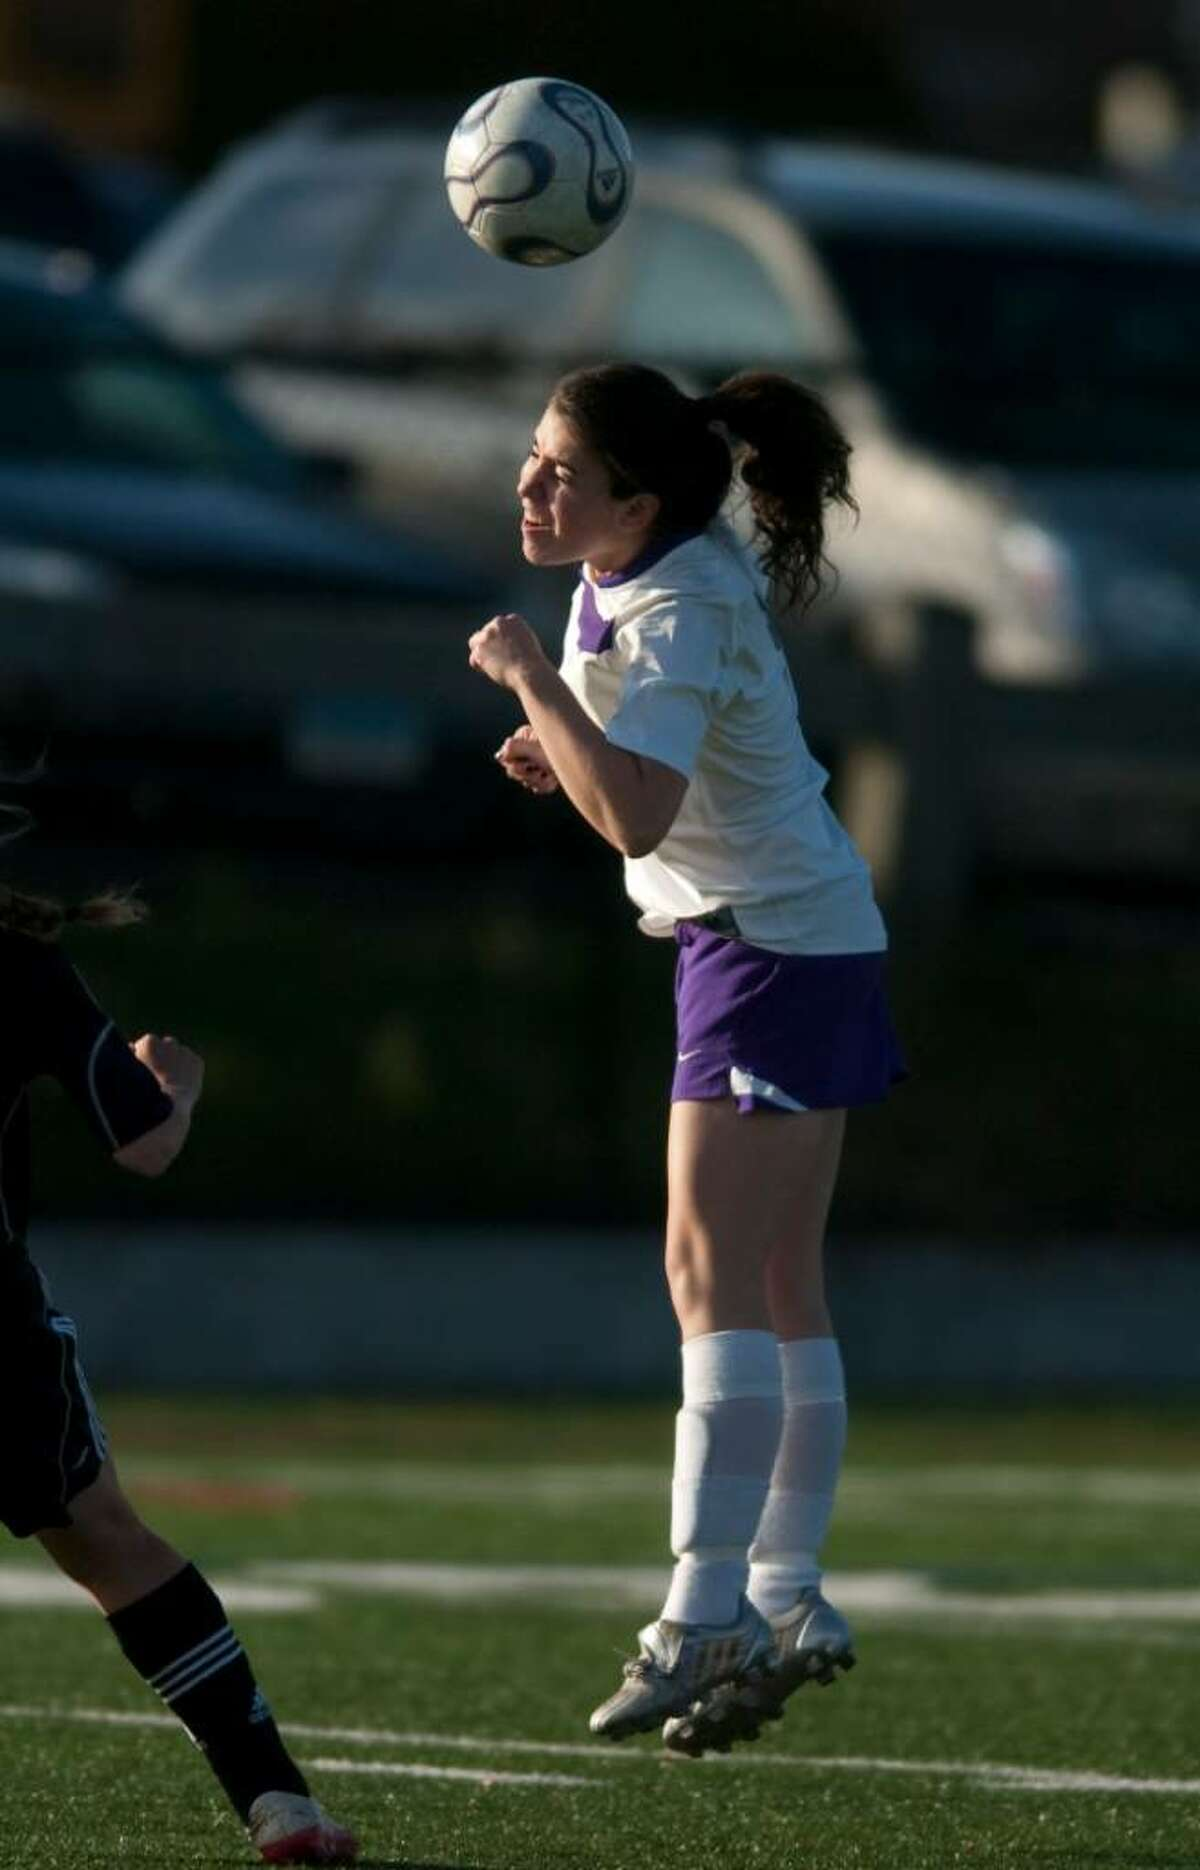 Westhill's Sarah Hartford heads the ball during an FCIAC soccer game against Fairfield Warde High School at Westhill High School in Stamford, Conn. on Monday, Oct. 26, 2009.